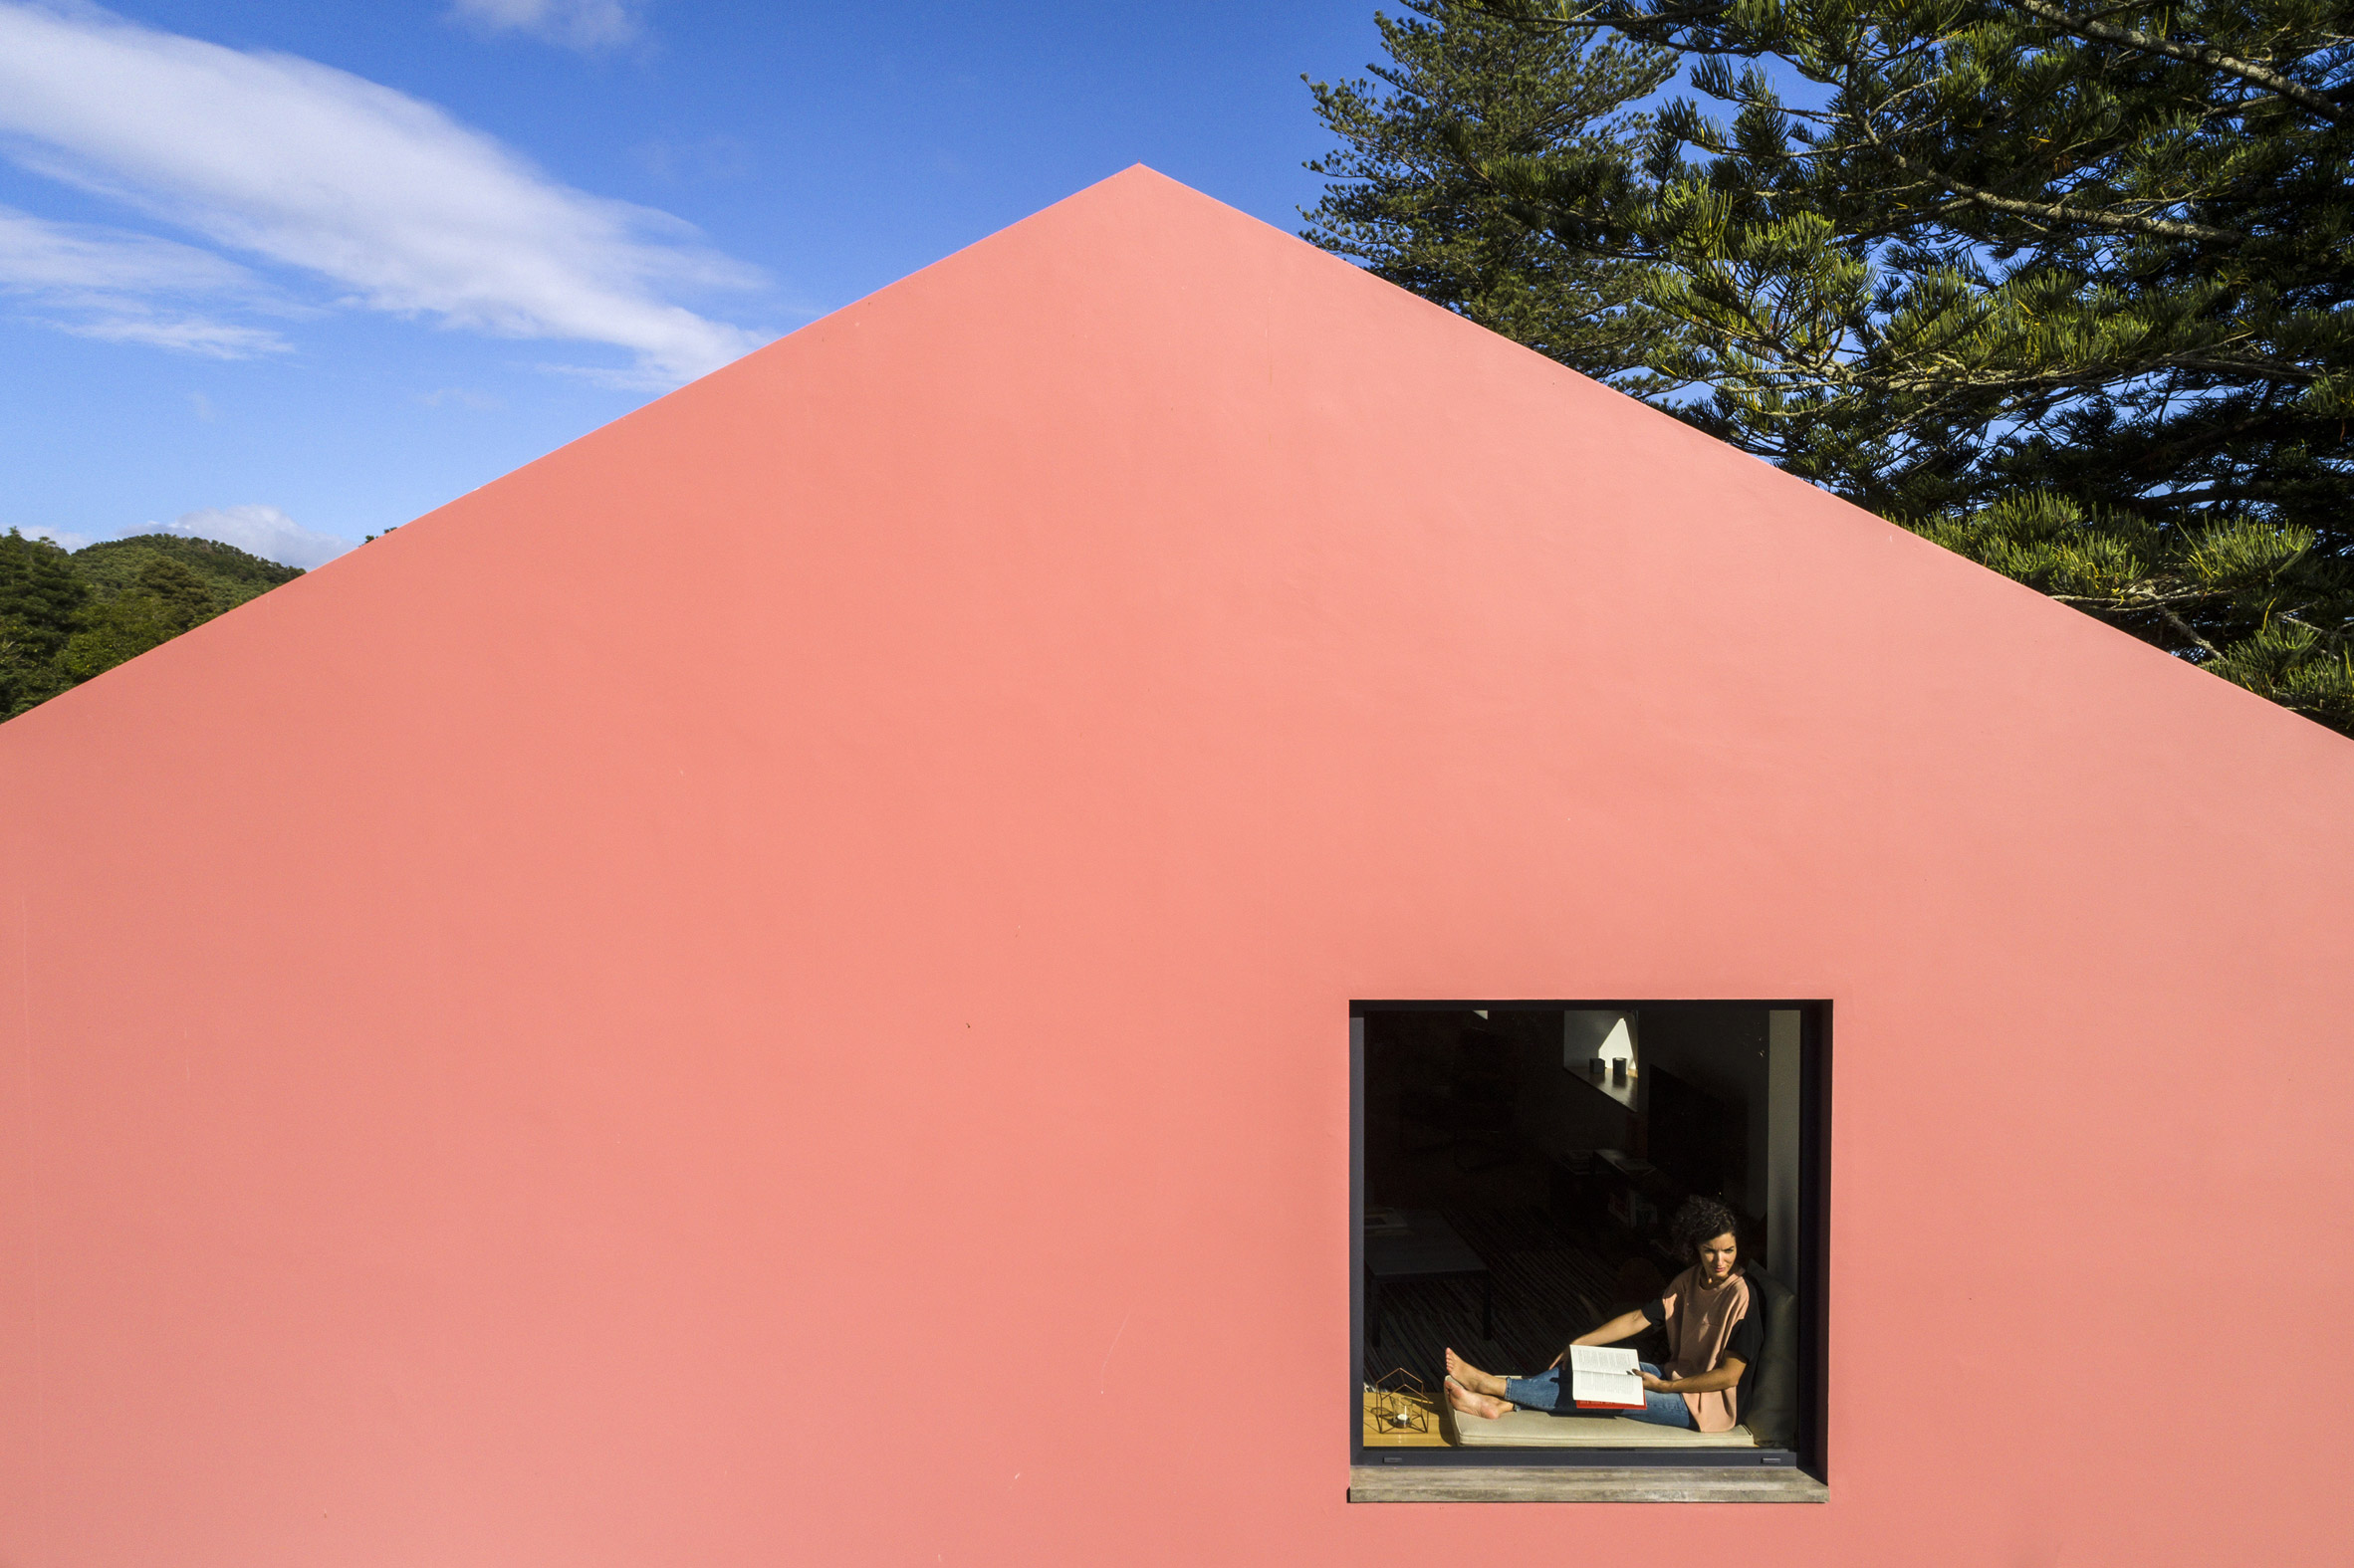 Mezzo Atelier transforms century-old barn into pair of bright pink guesthouses